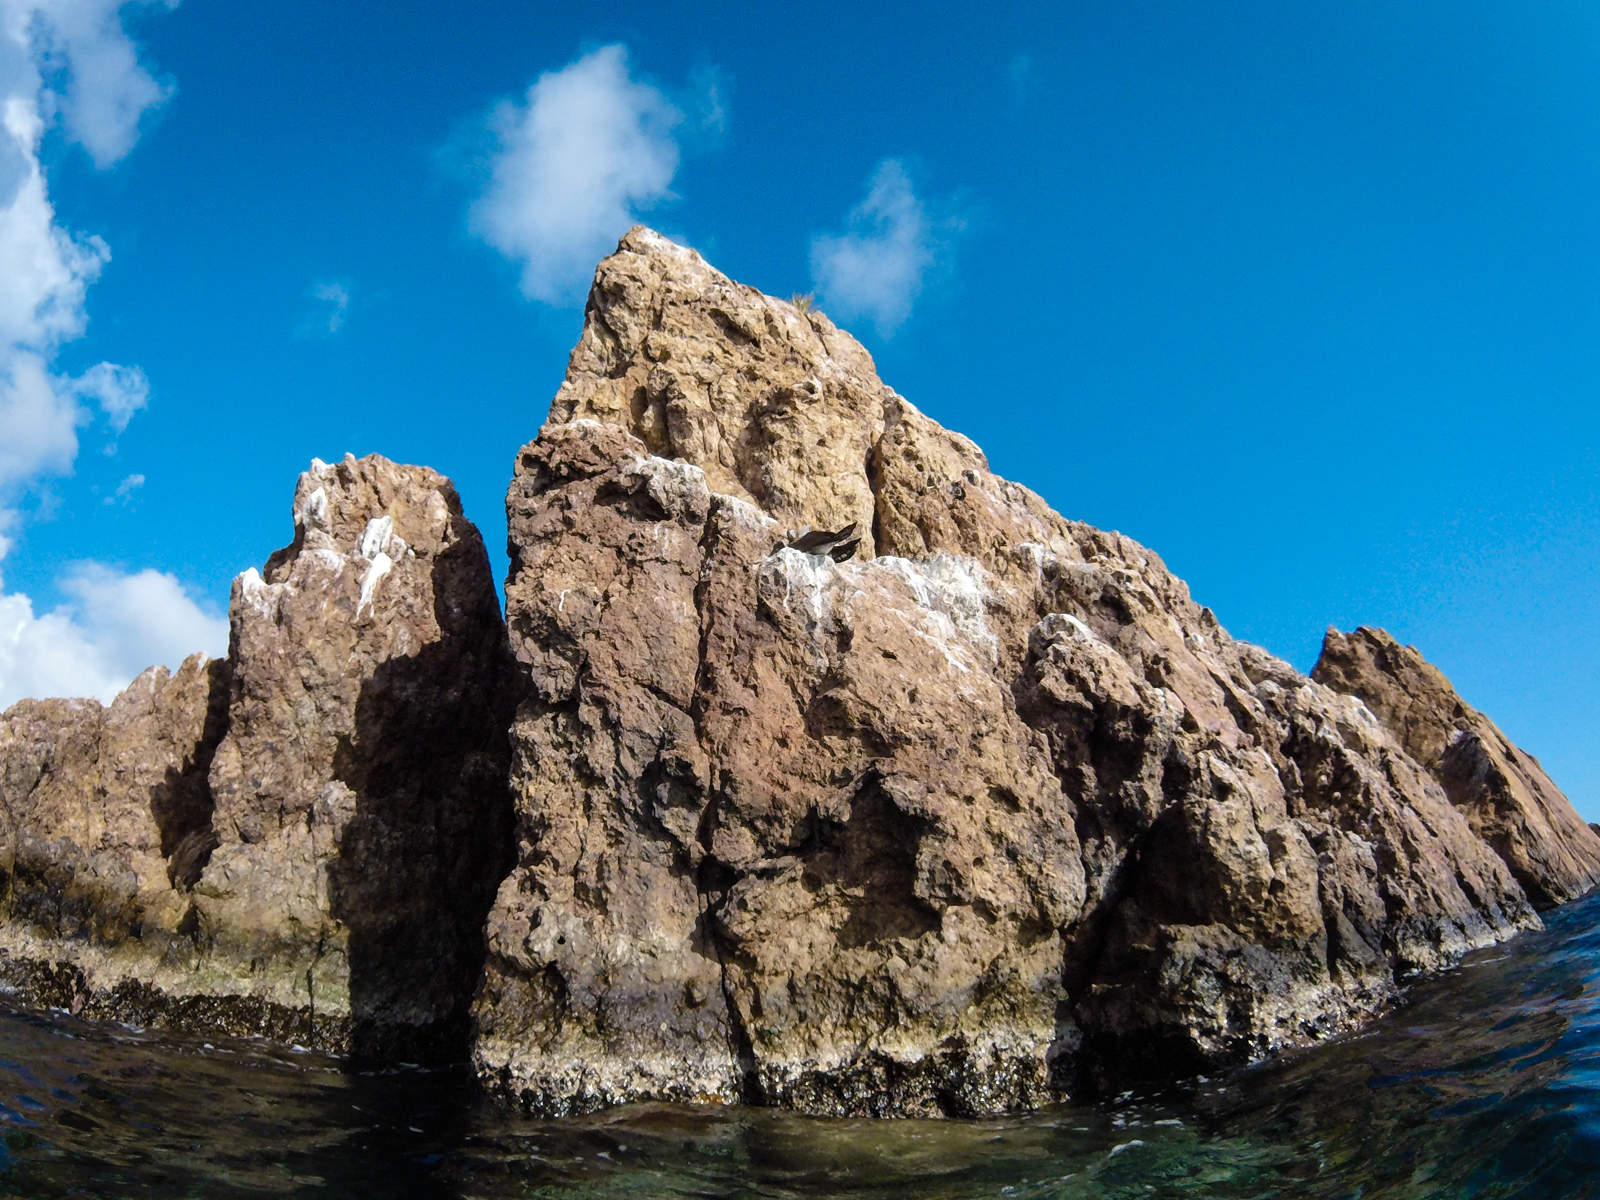 A brown booby greets us from an outcrop at the Indians, a place in the BVI that wen't largely unscathed by last year's devastating hurricane season.